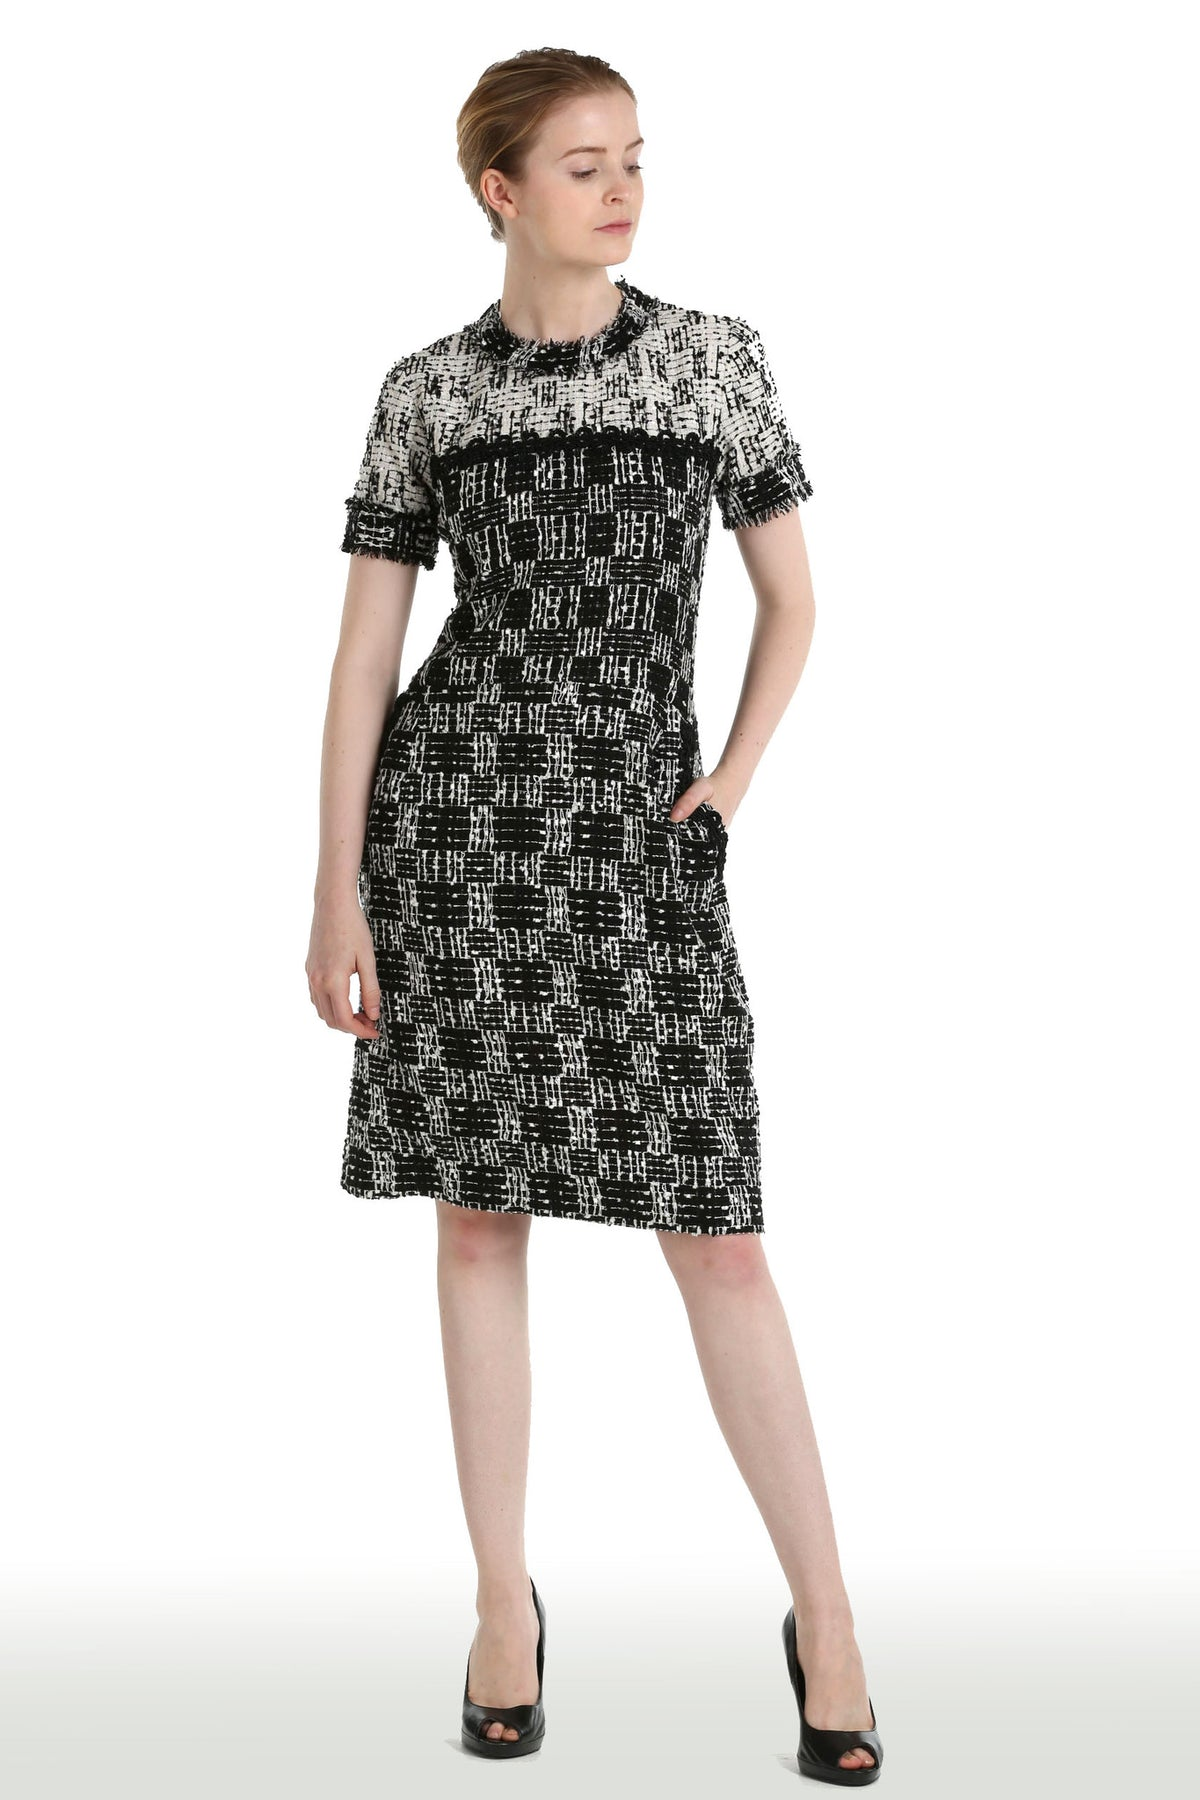 Tweed Black & White Dress